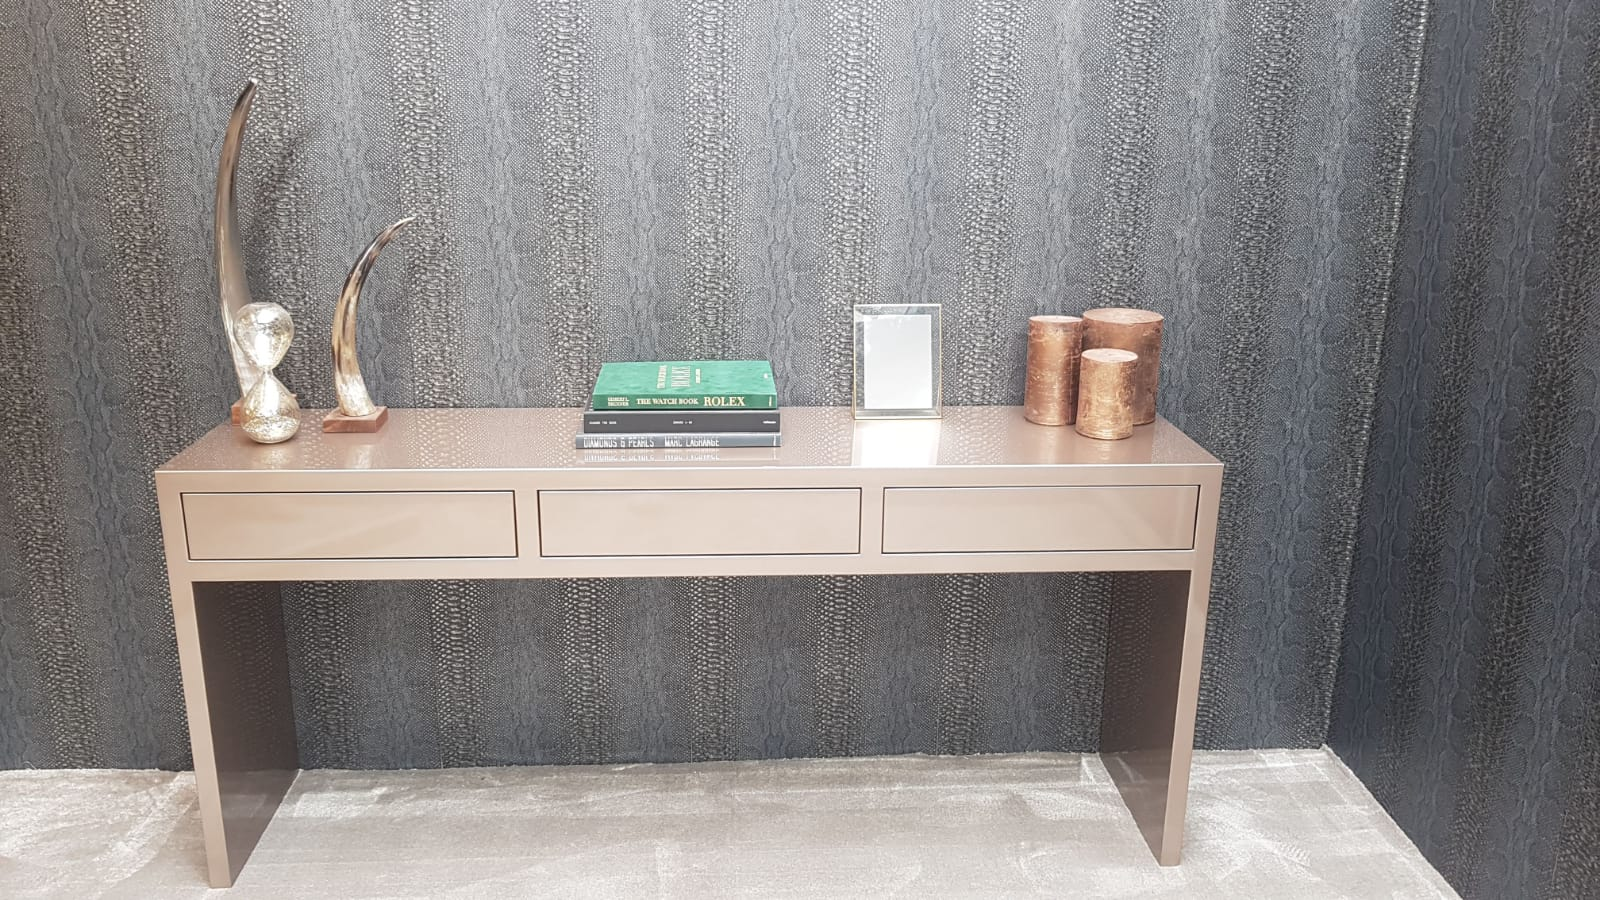 Console met pushlades